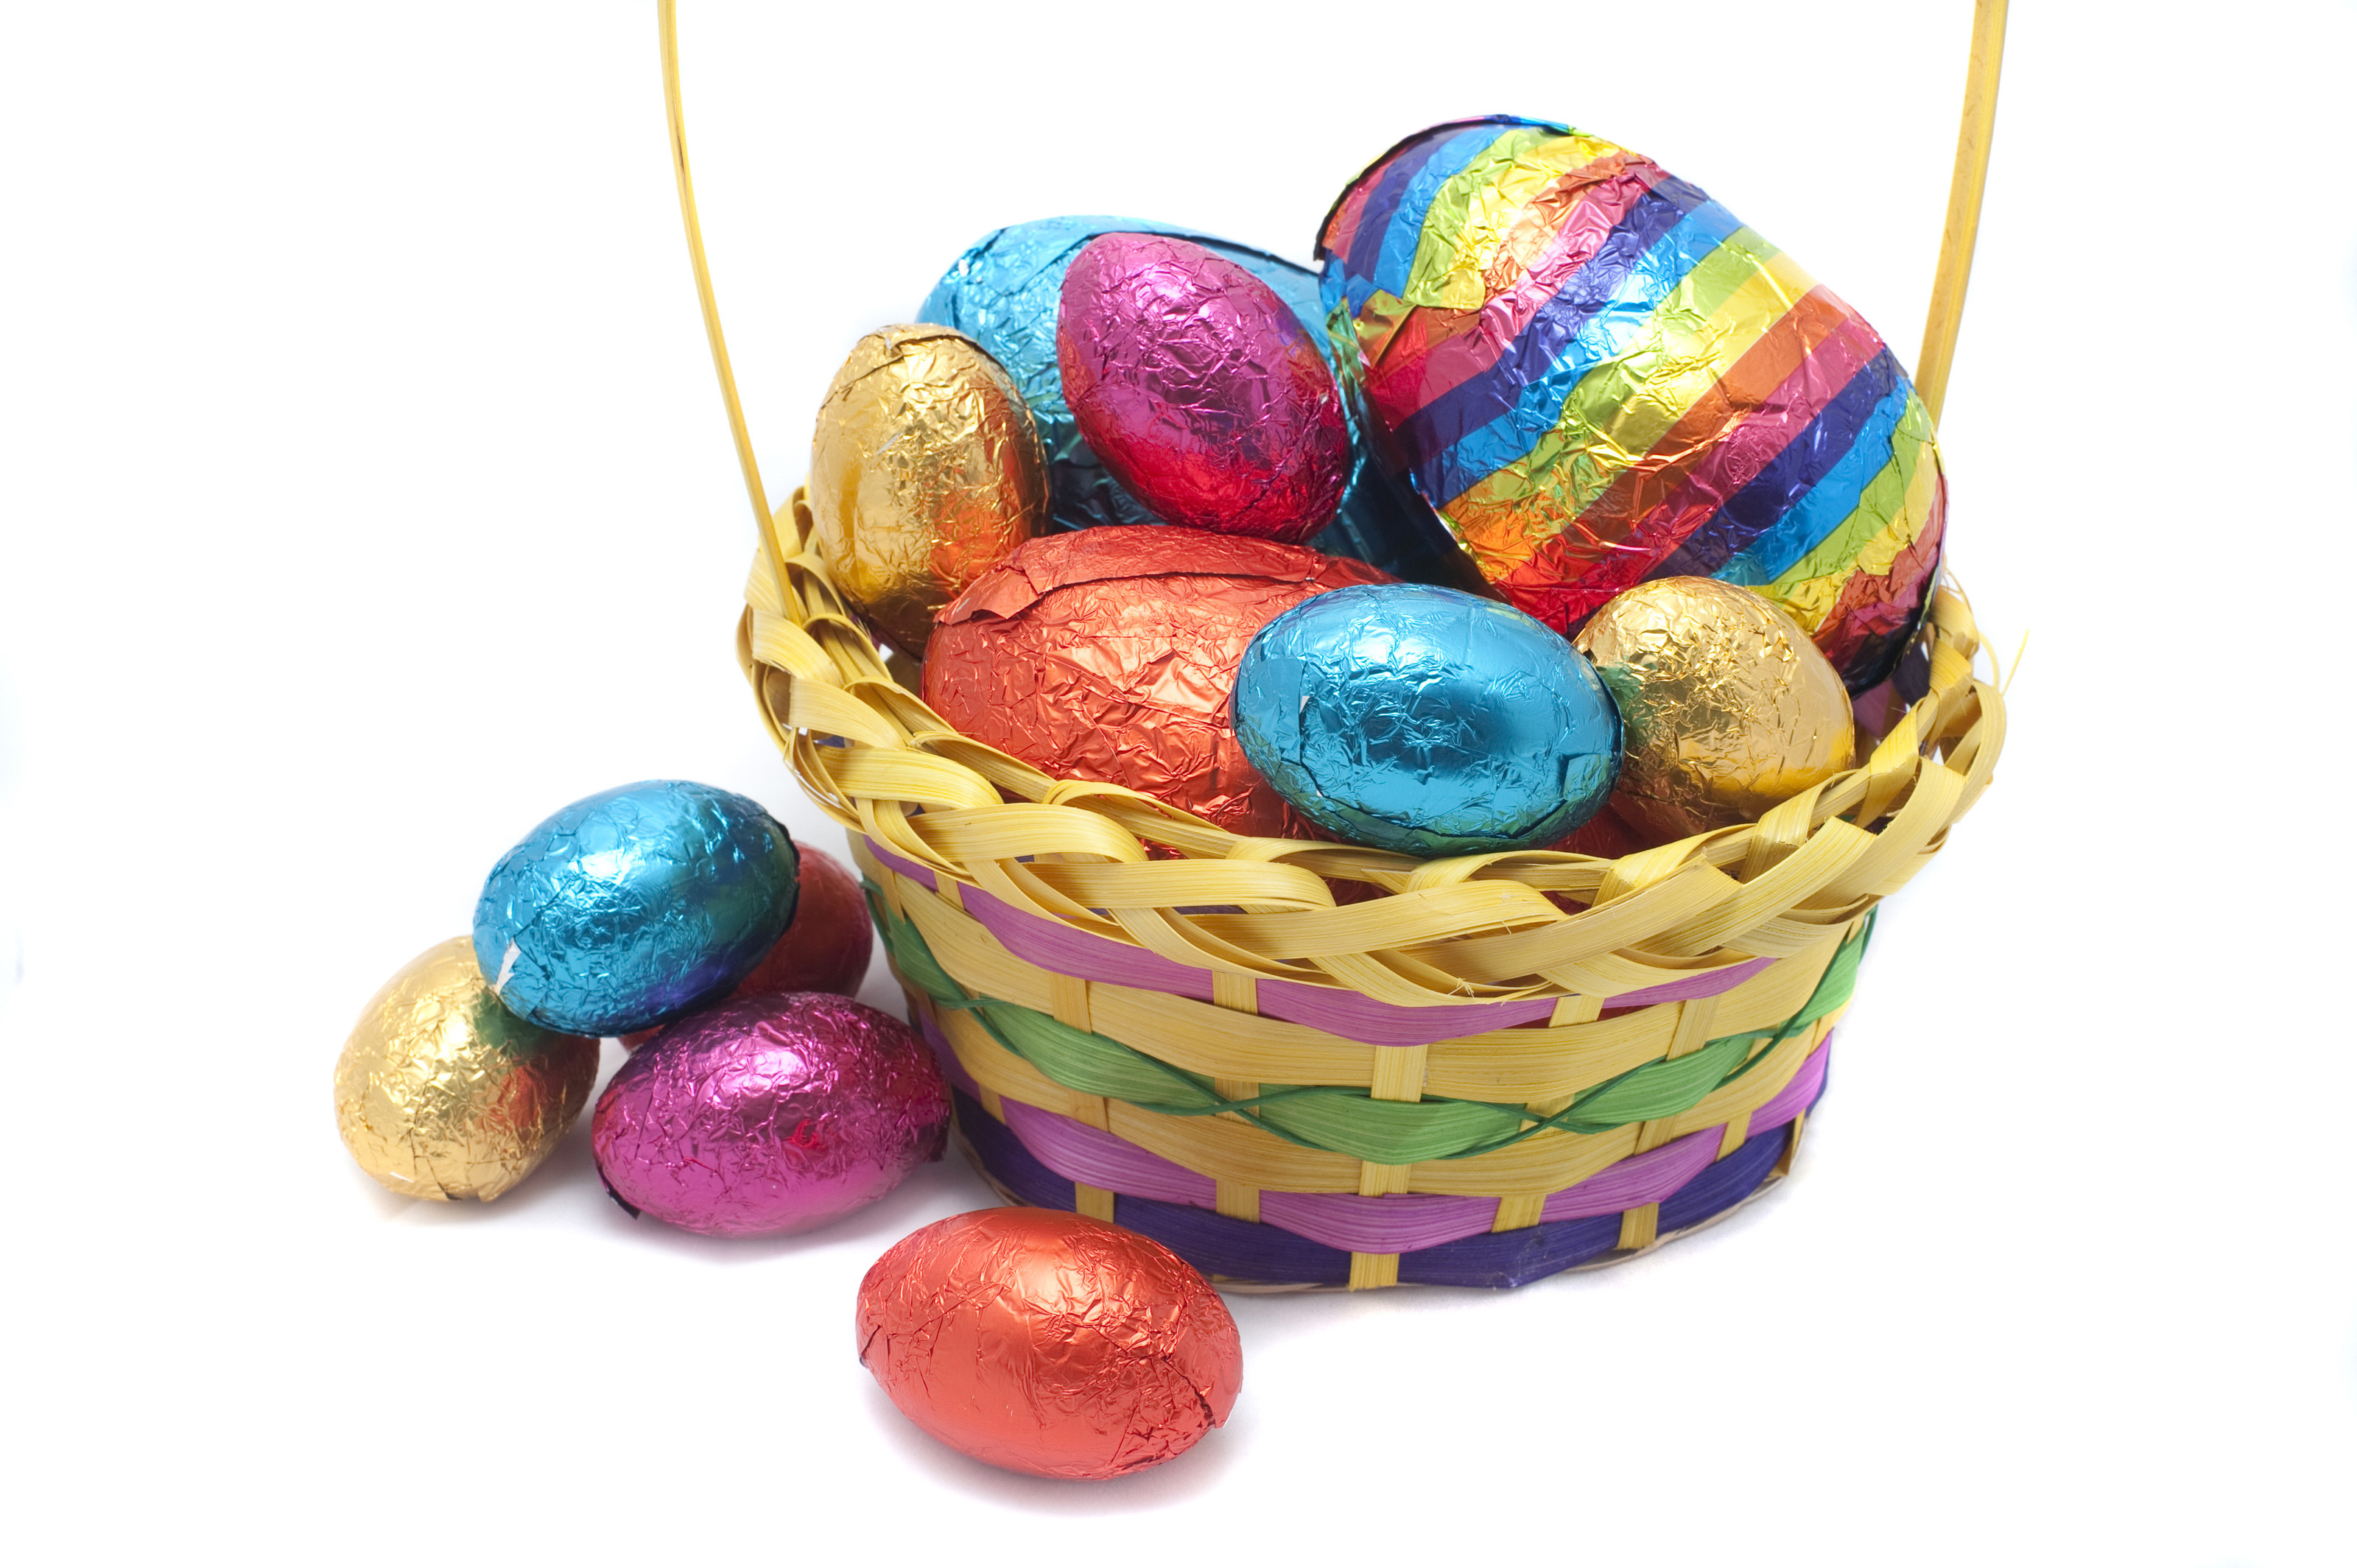 Free stock photo 7889 basket of easter eggs freeimageslive decorative basket of easter eggs in assorted sizes and colours on a white studio background negle Choice Image